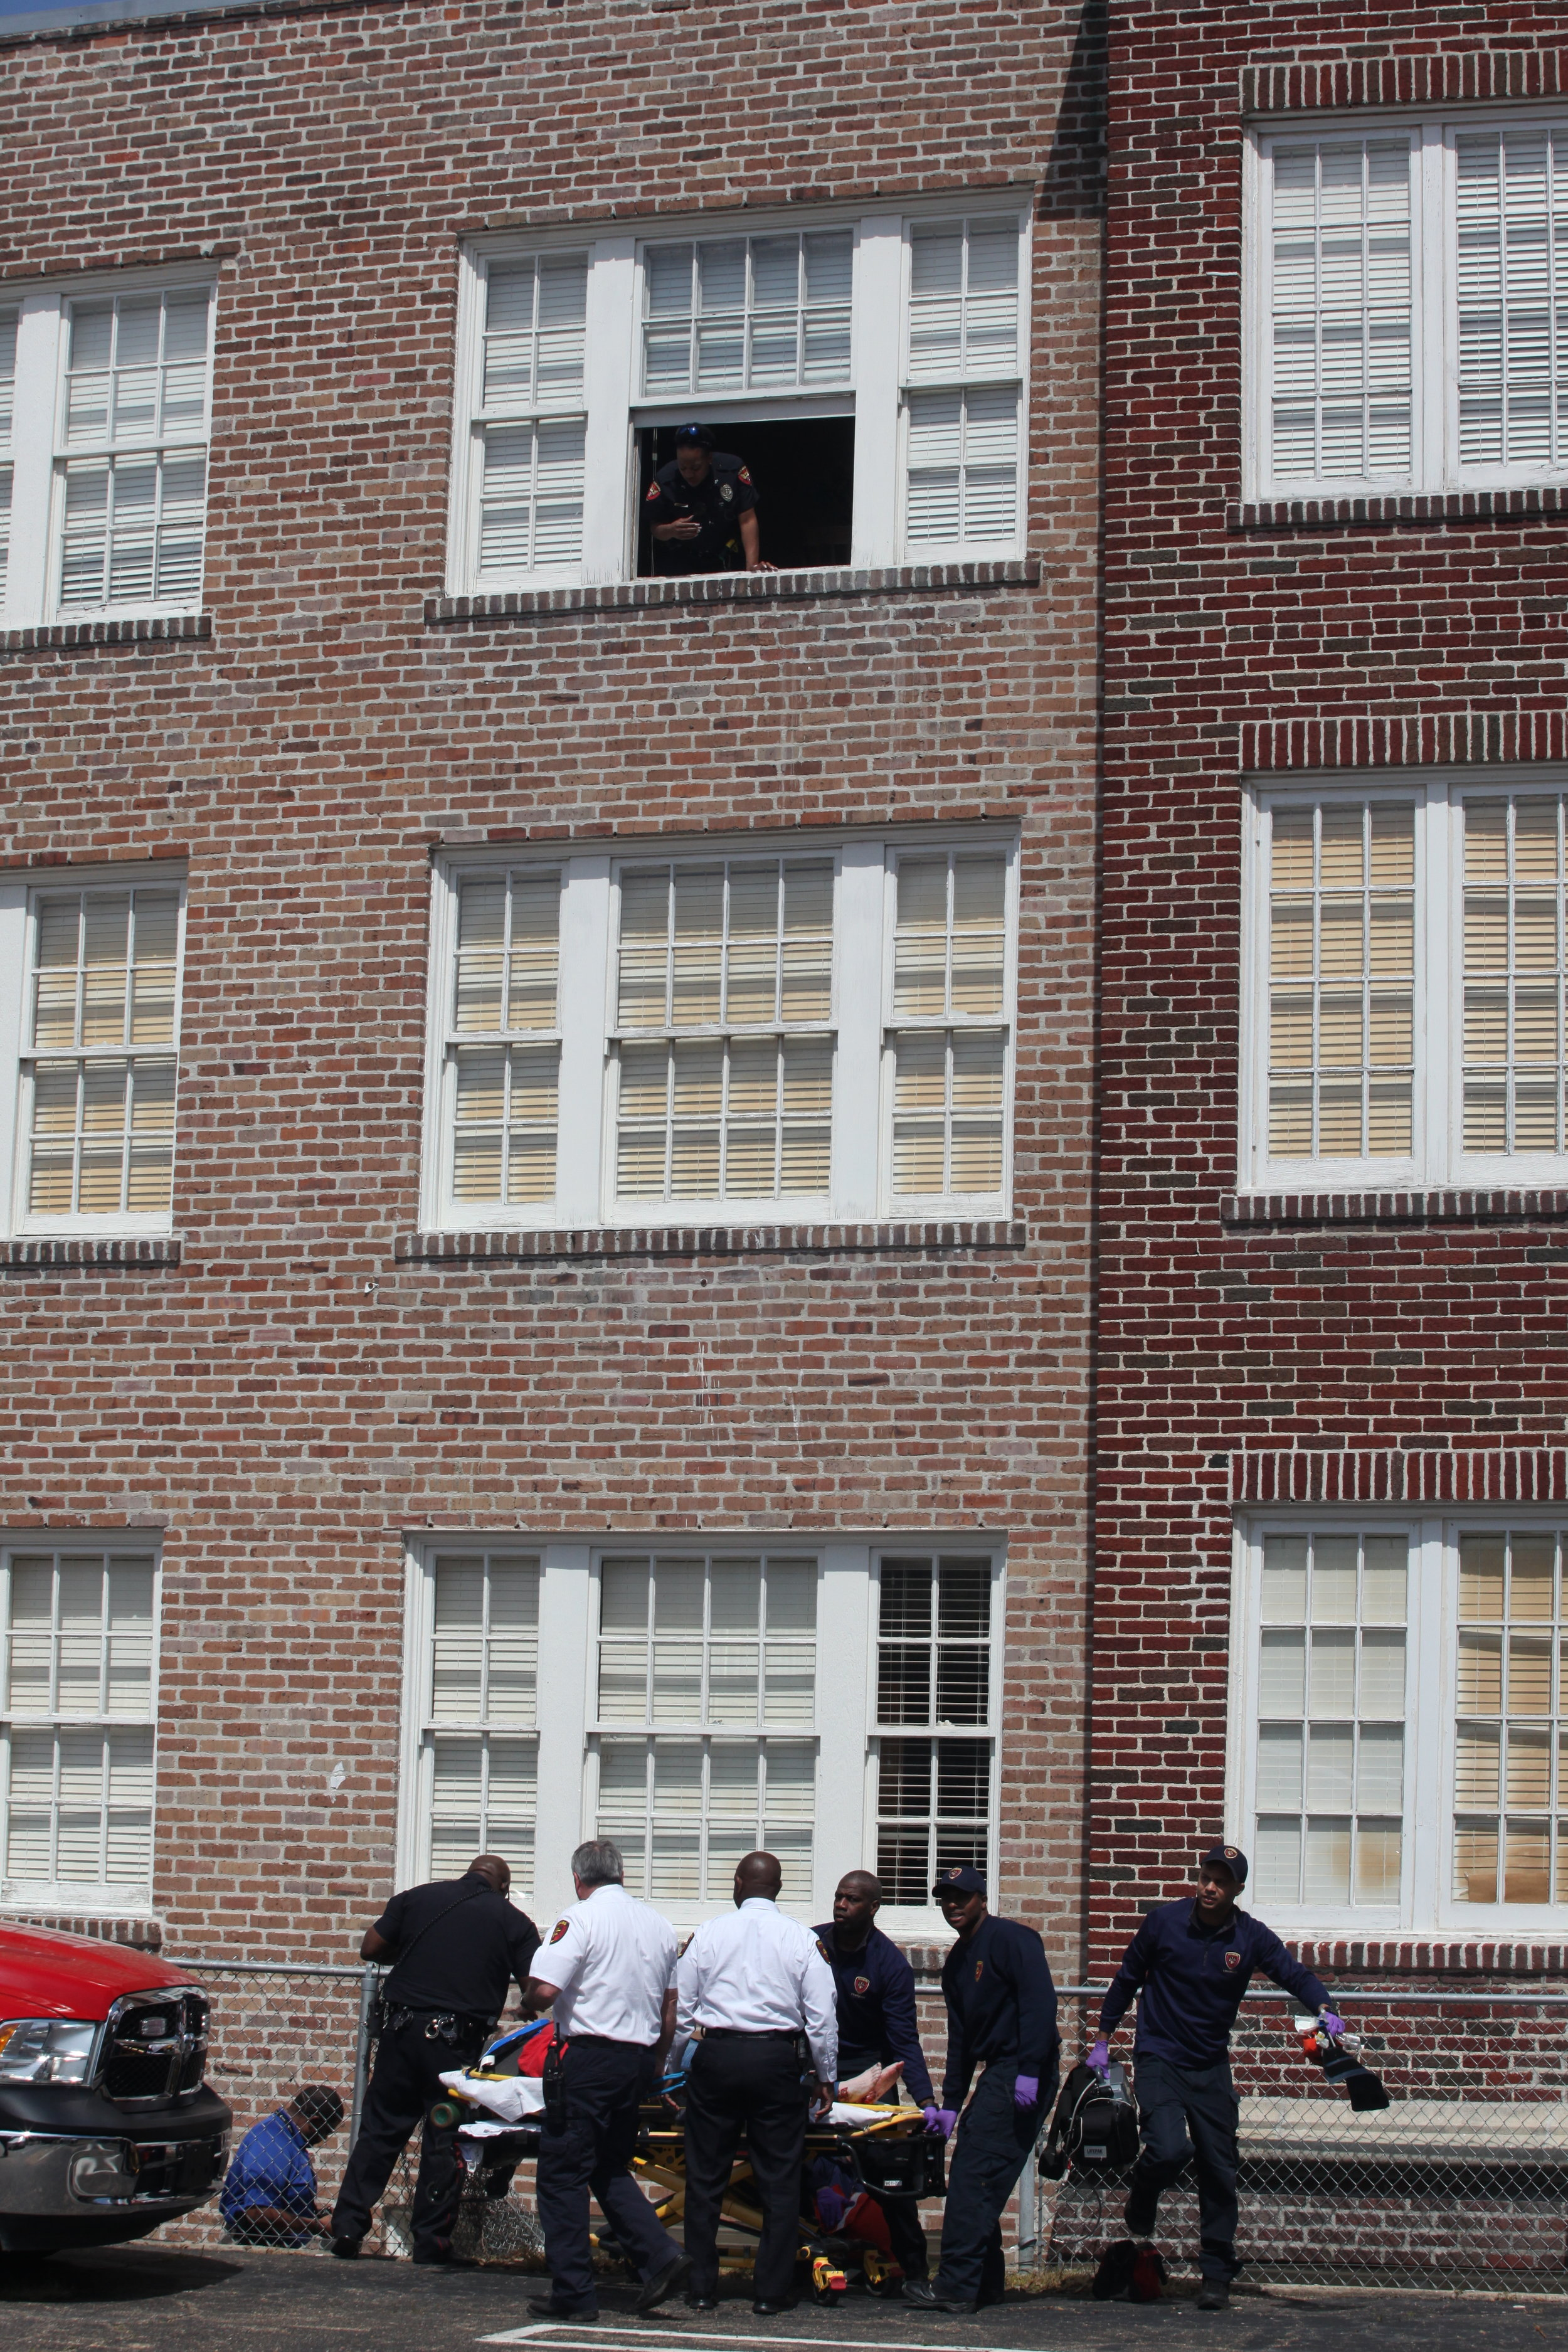 A woman who is believed to have jumped from the fourth floor of the Aeolian Senior Apartments is lifted onto a stretcher to be transported for medical attention around 12:40 p.m. Thursday (Courtland Wells/The Vicksburg Post)